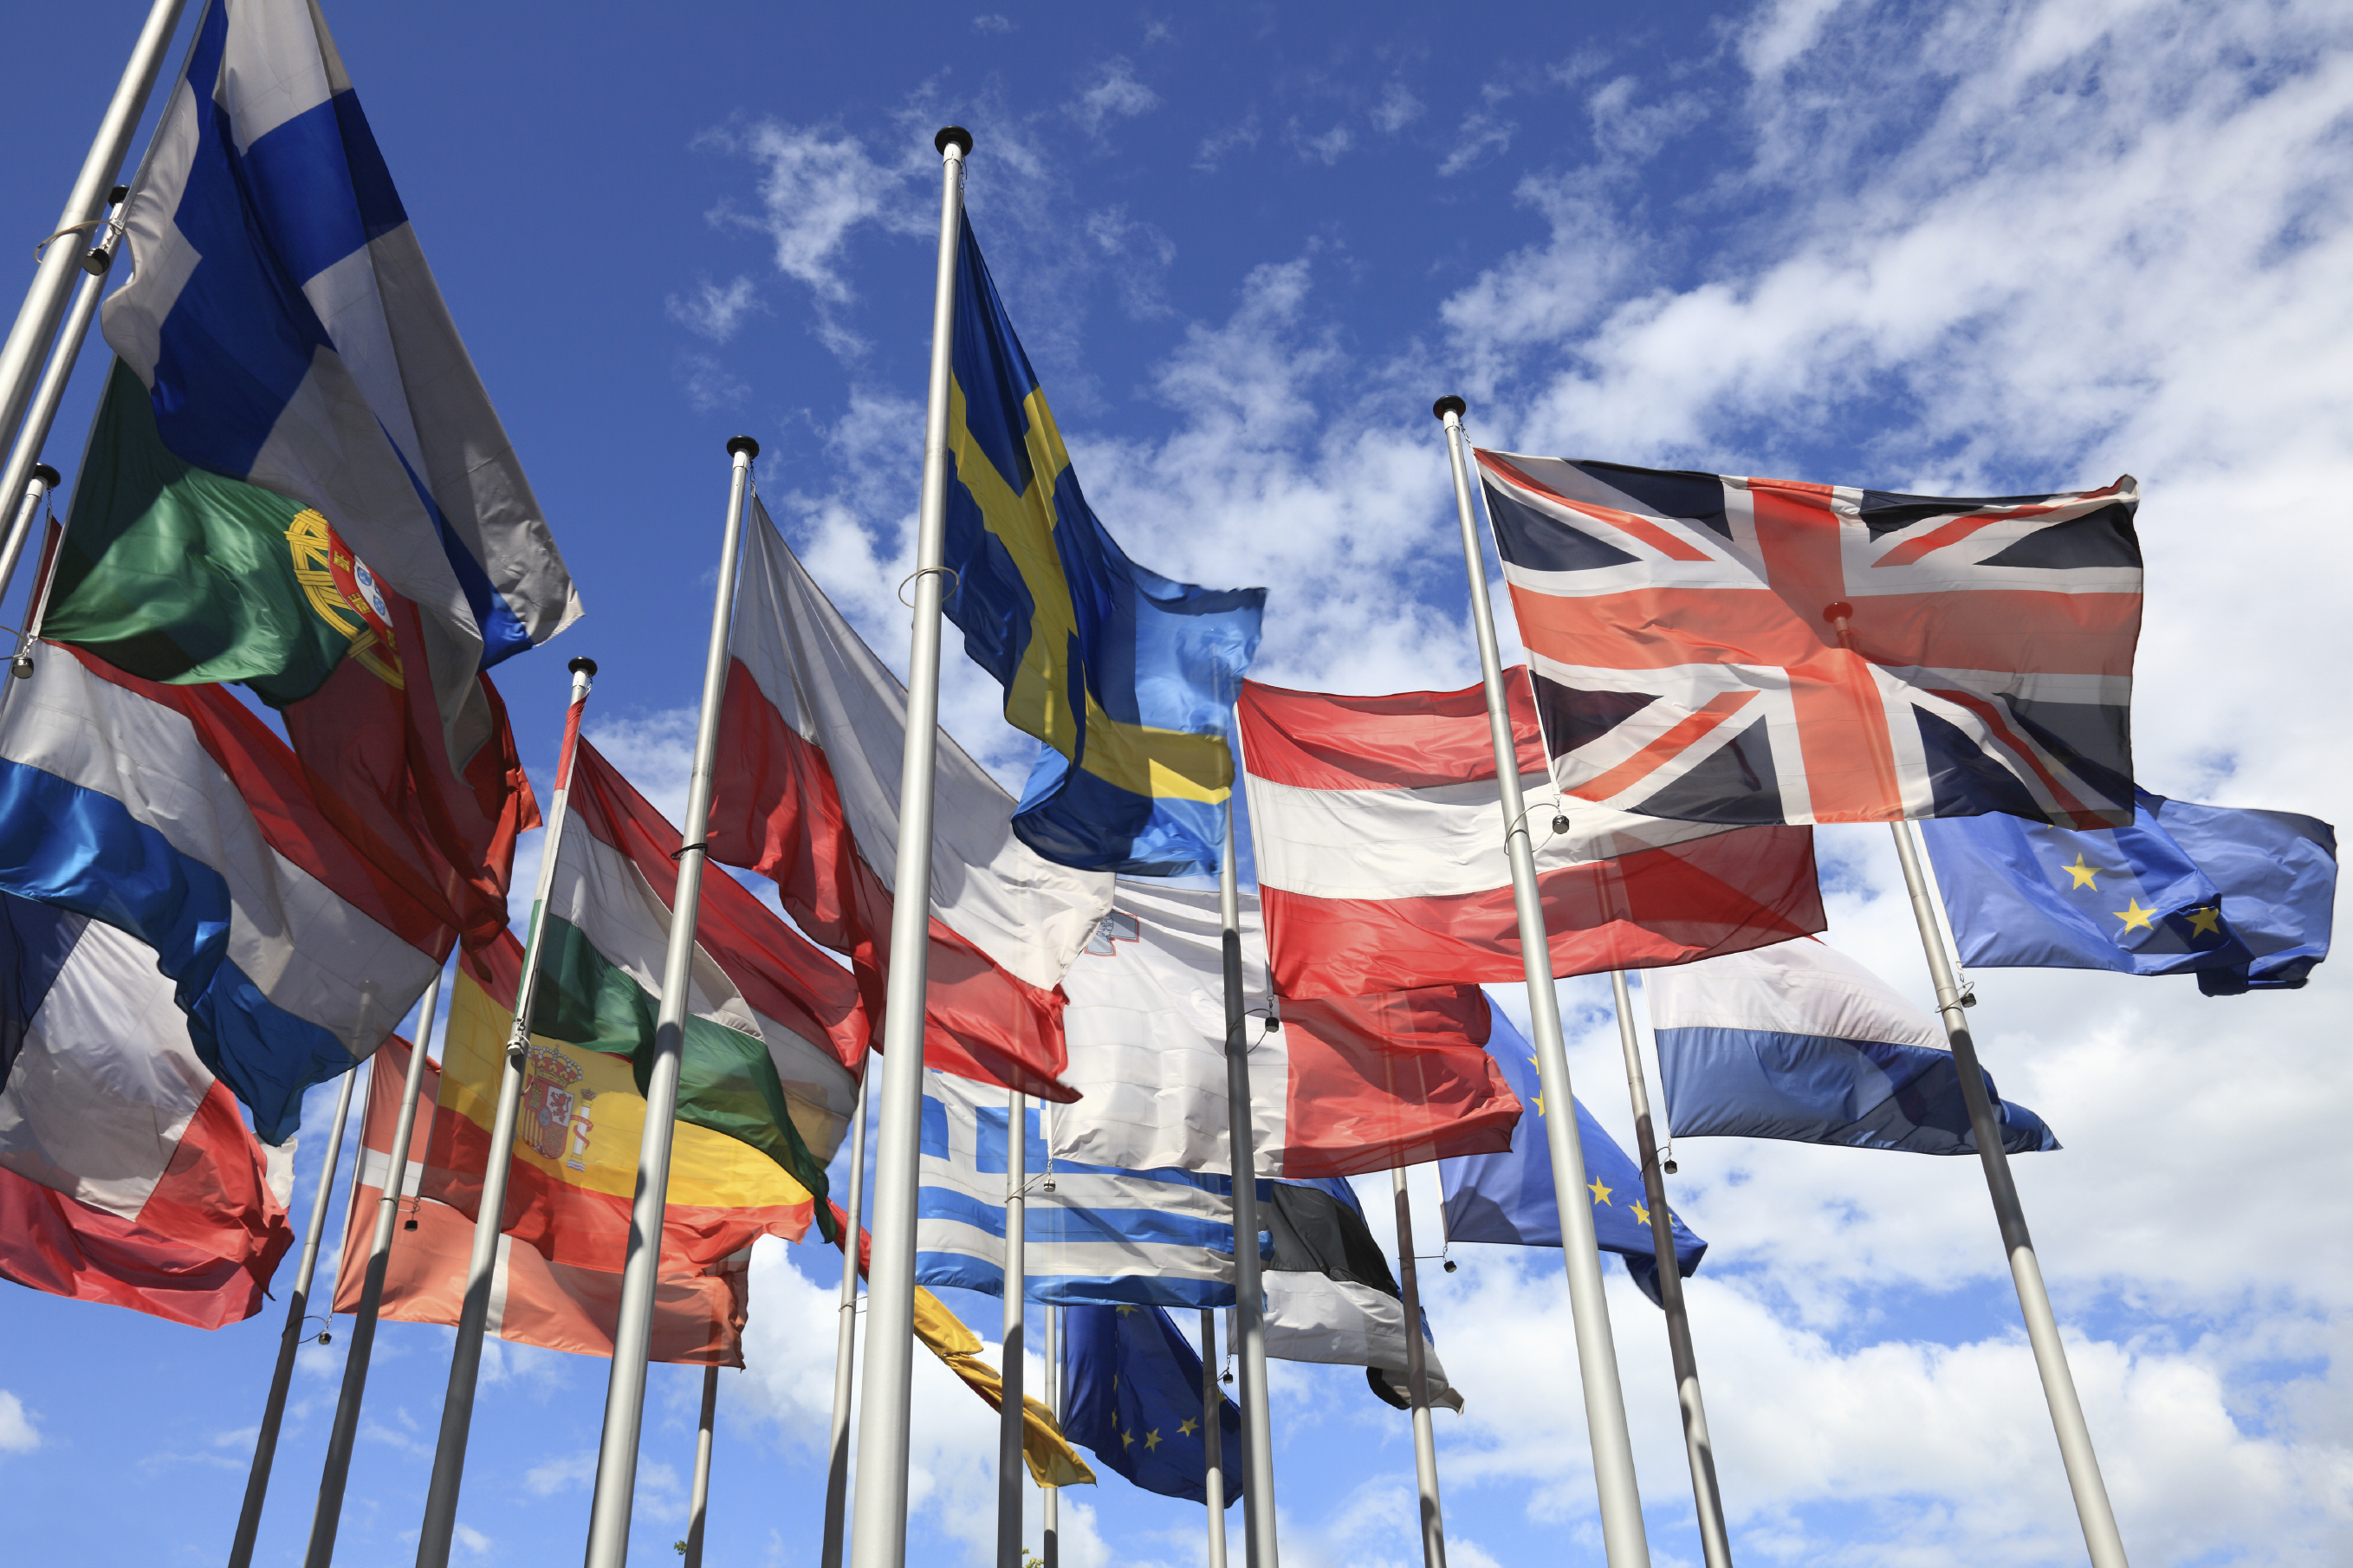 United Nations Members Flags The Big Debate: The Po...